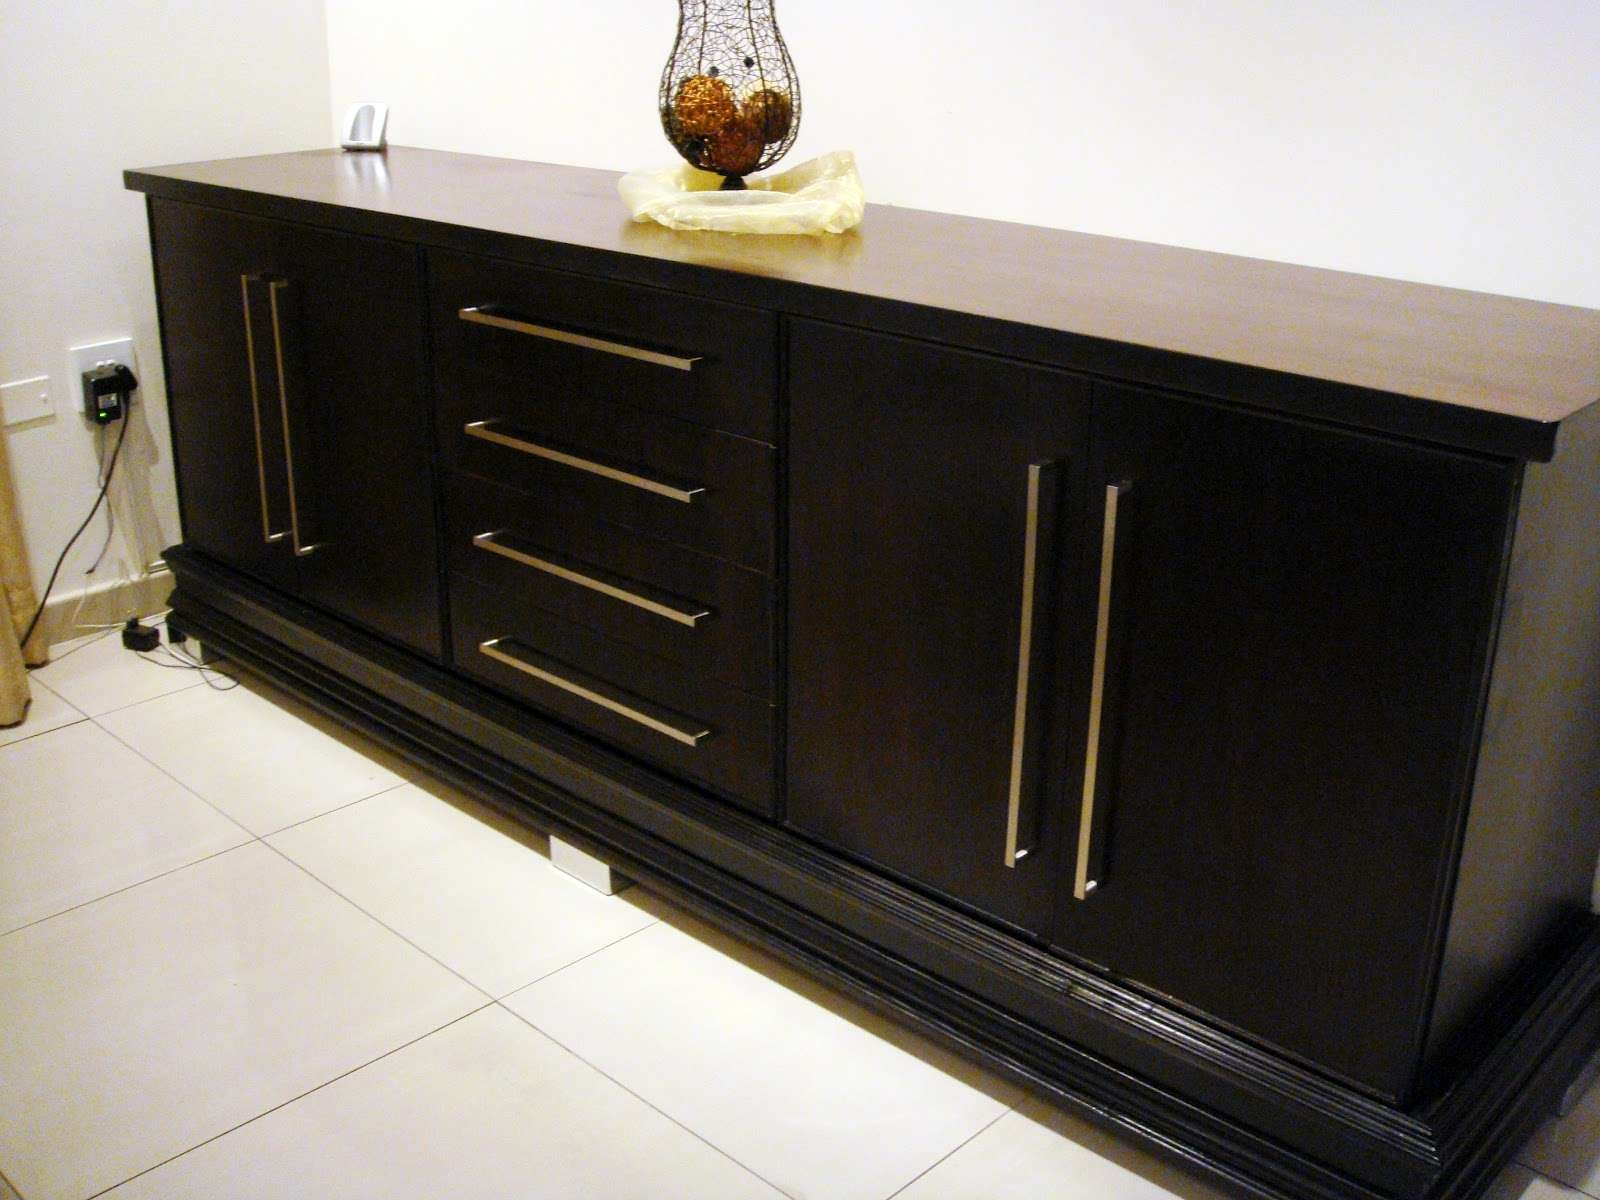 Dining Room Bar Sideboard | Latest Home Decor And Design In Black Dining Room Sideboards (View 13 of 20)